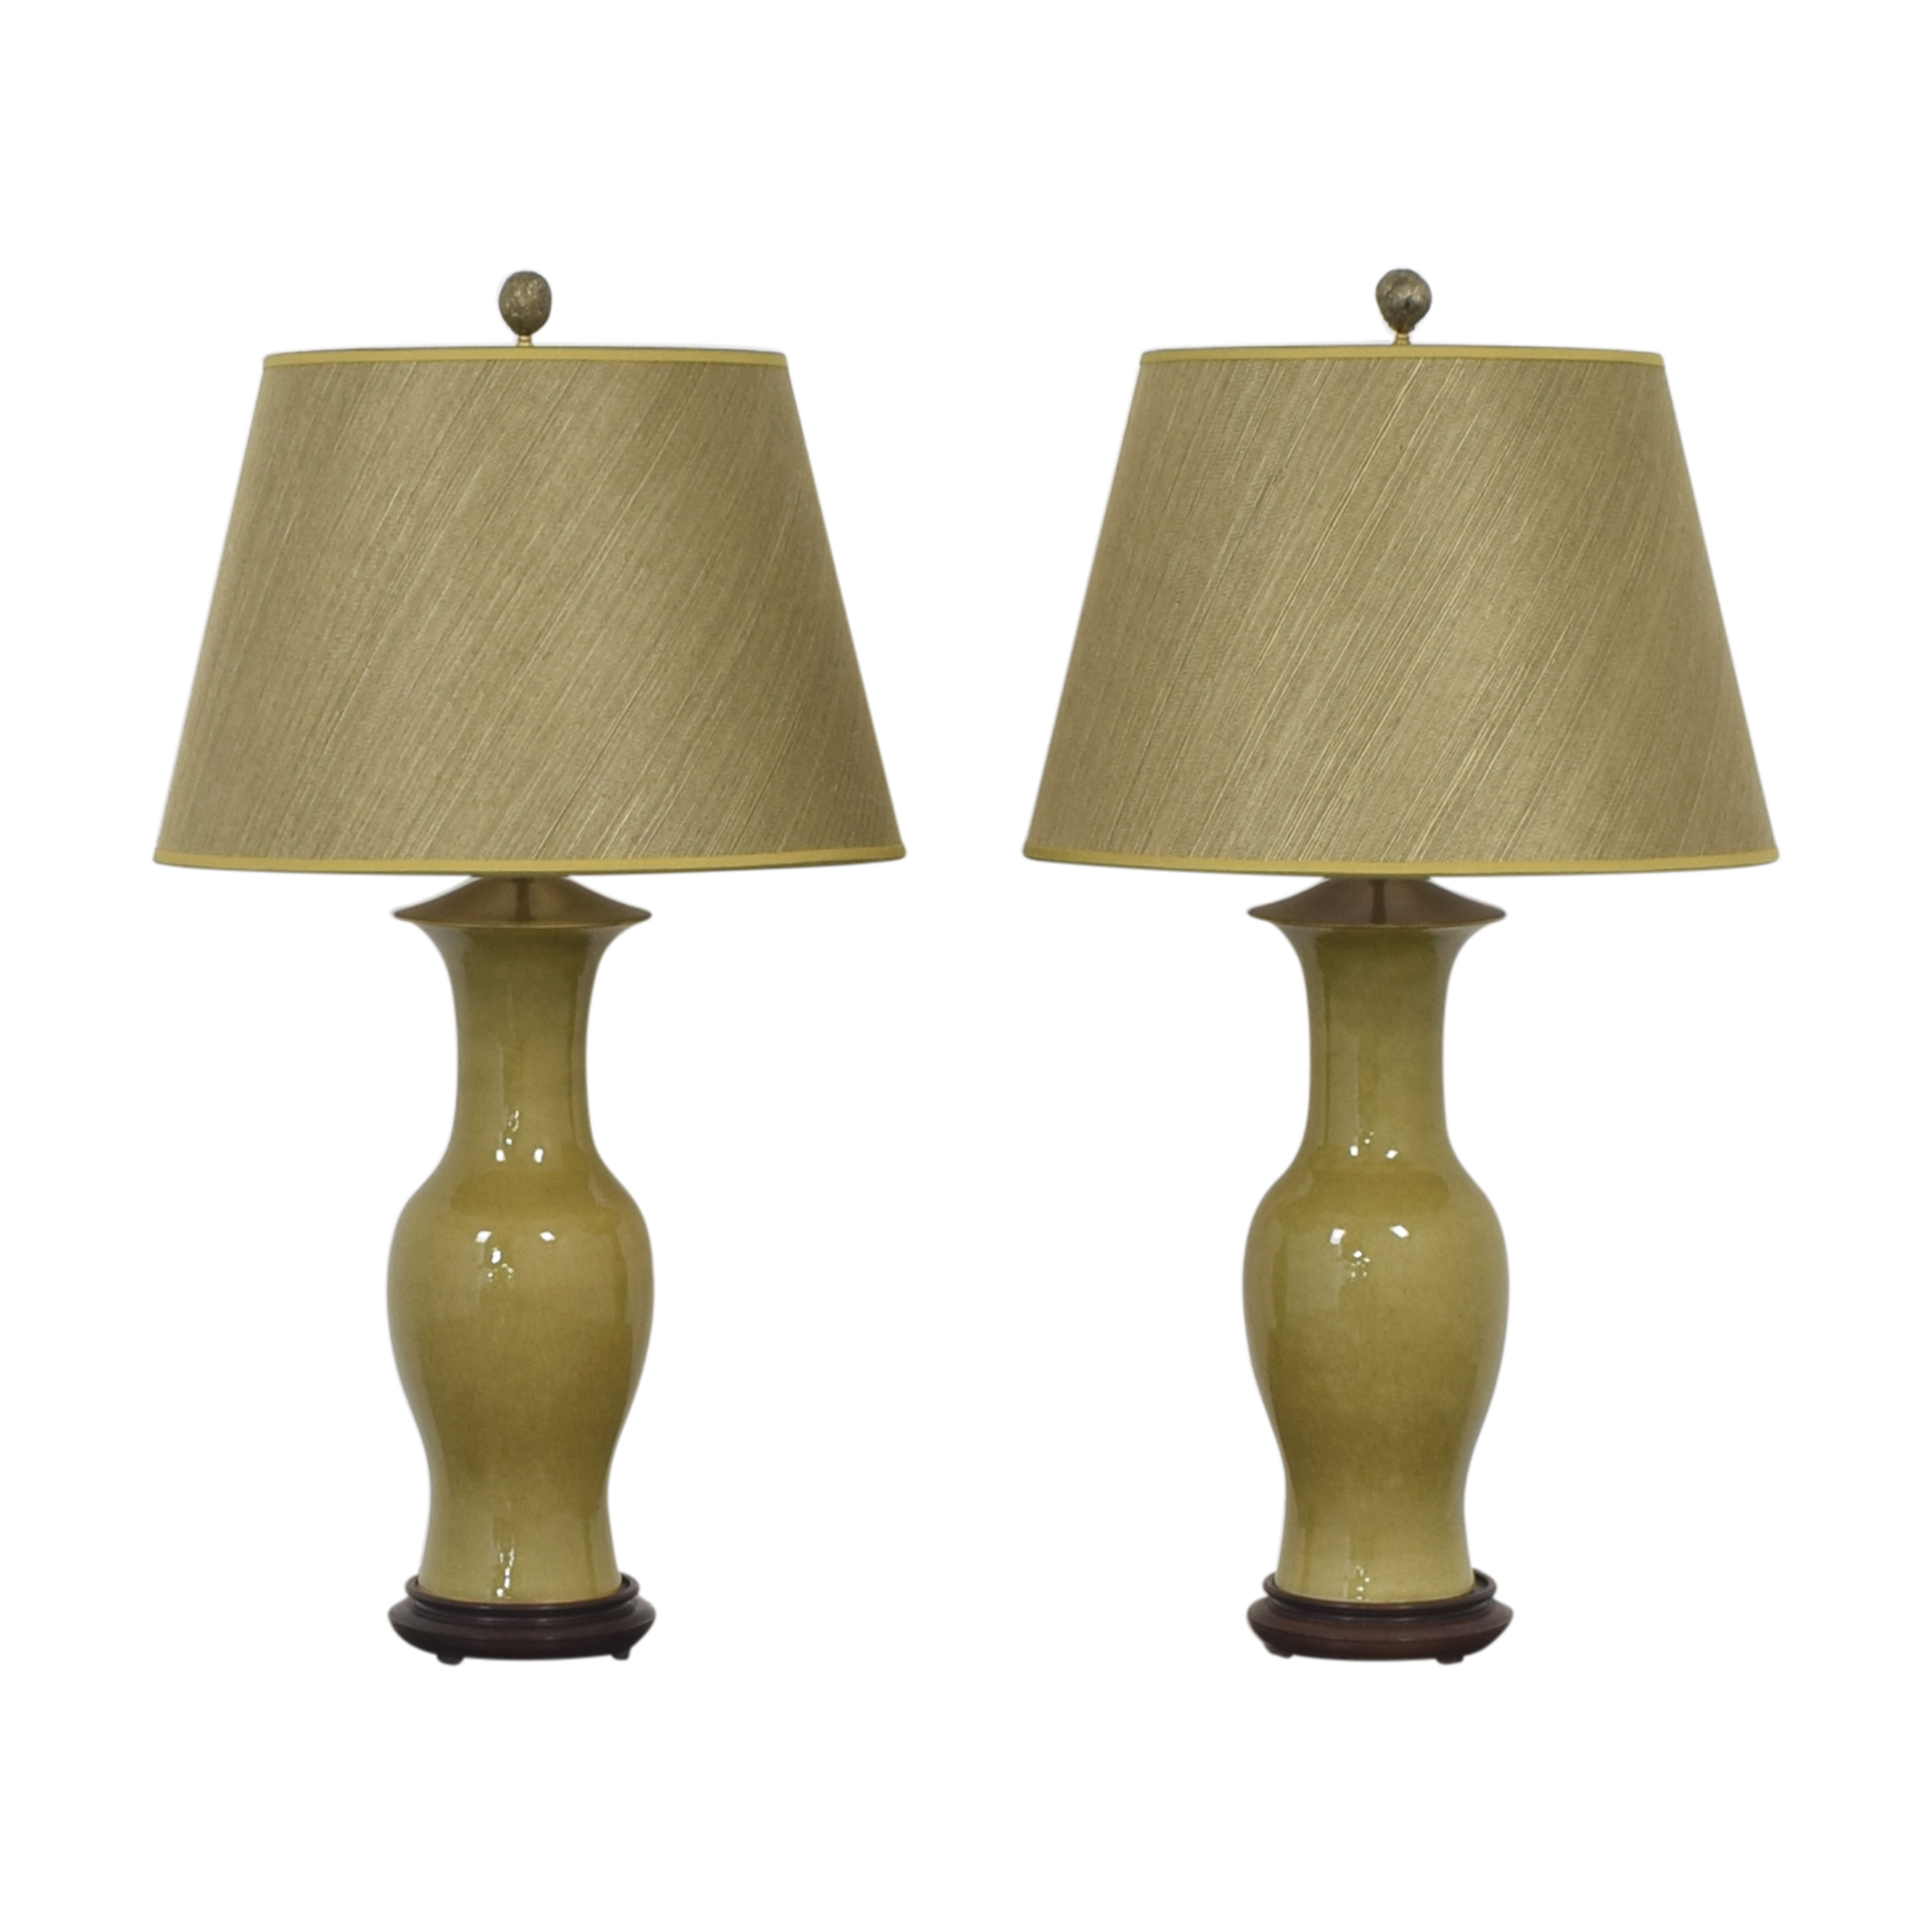 Warren Kessler Urn Table Lamps / Decor